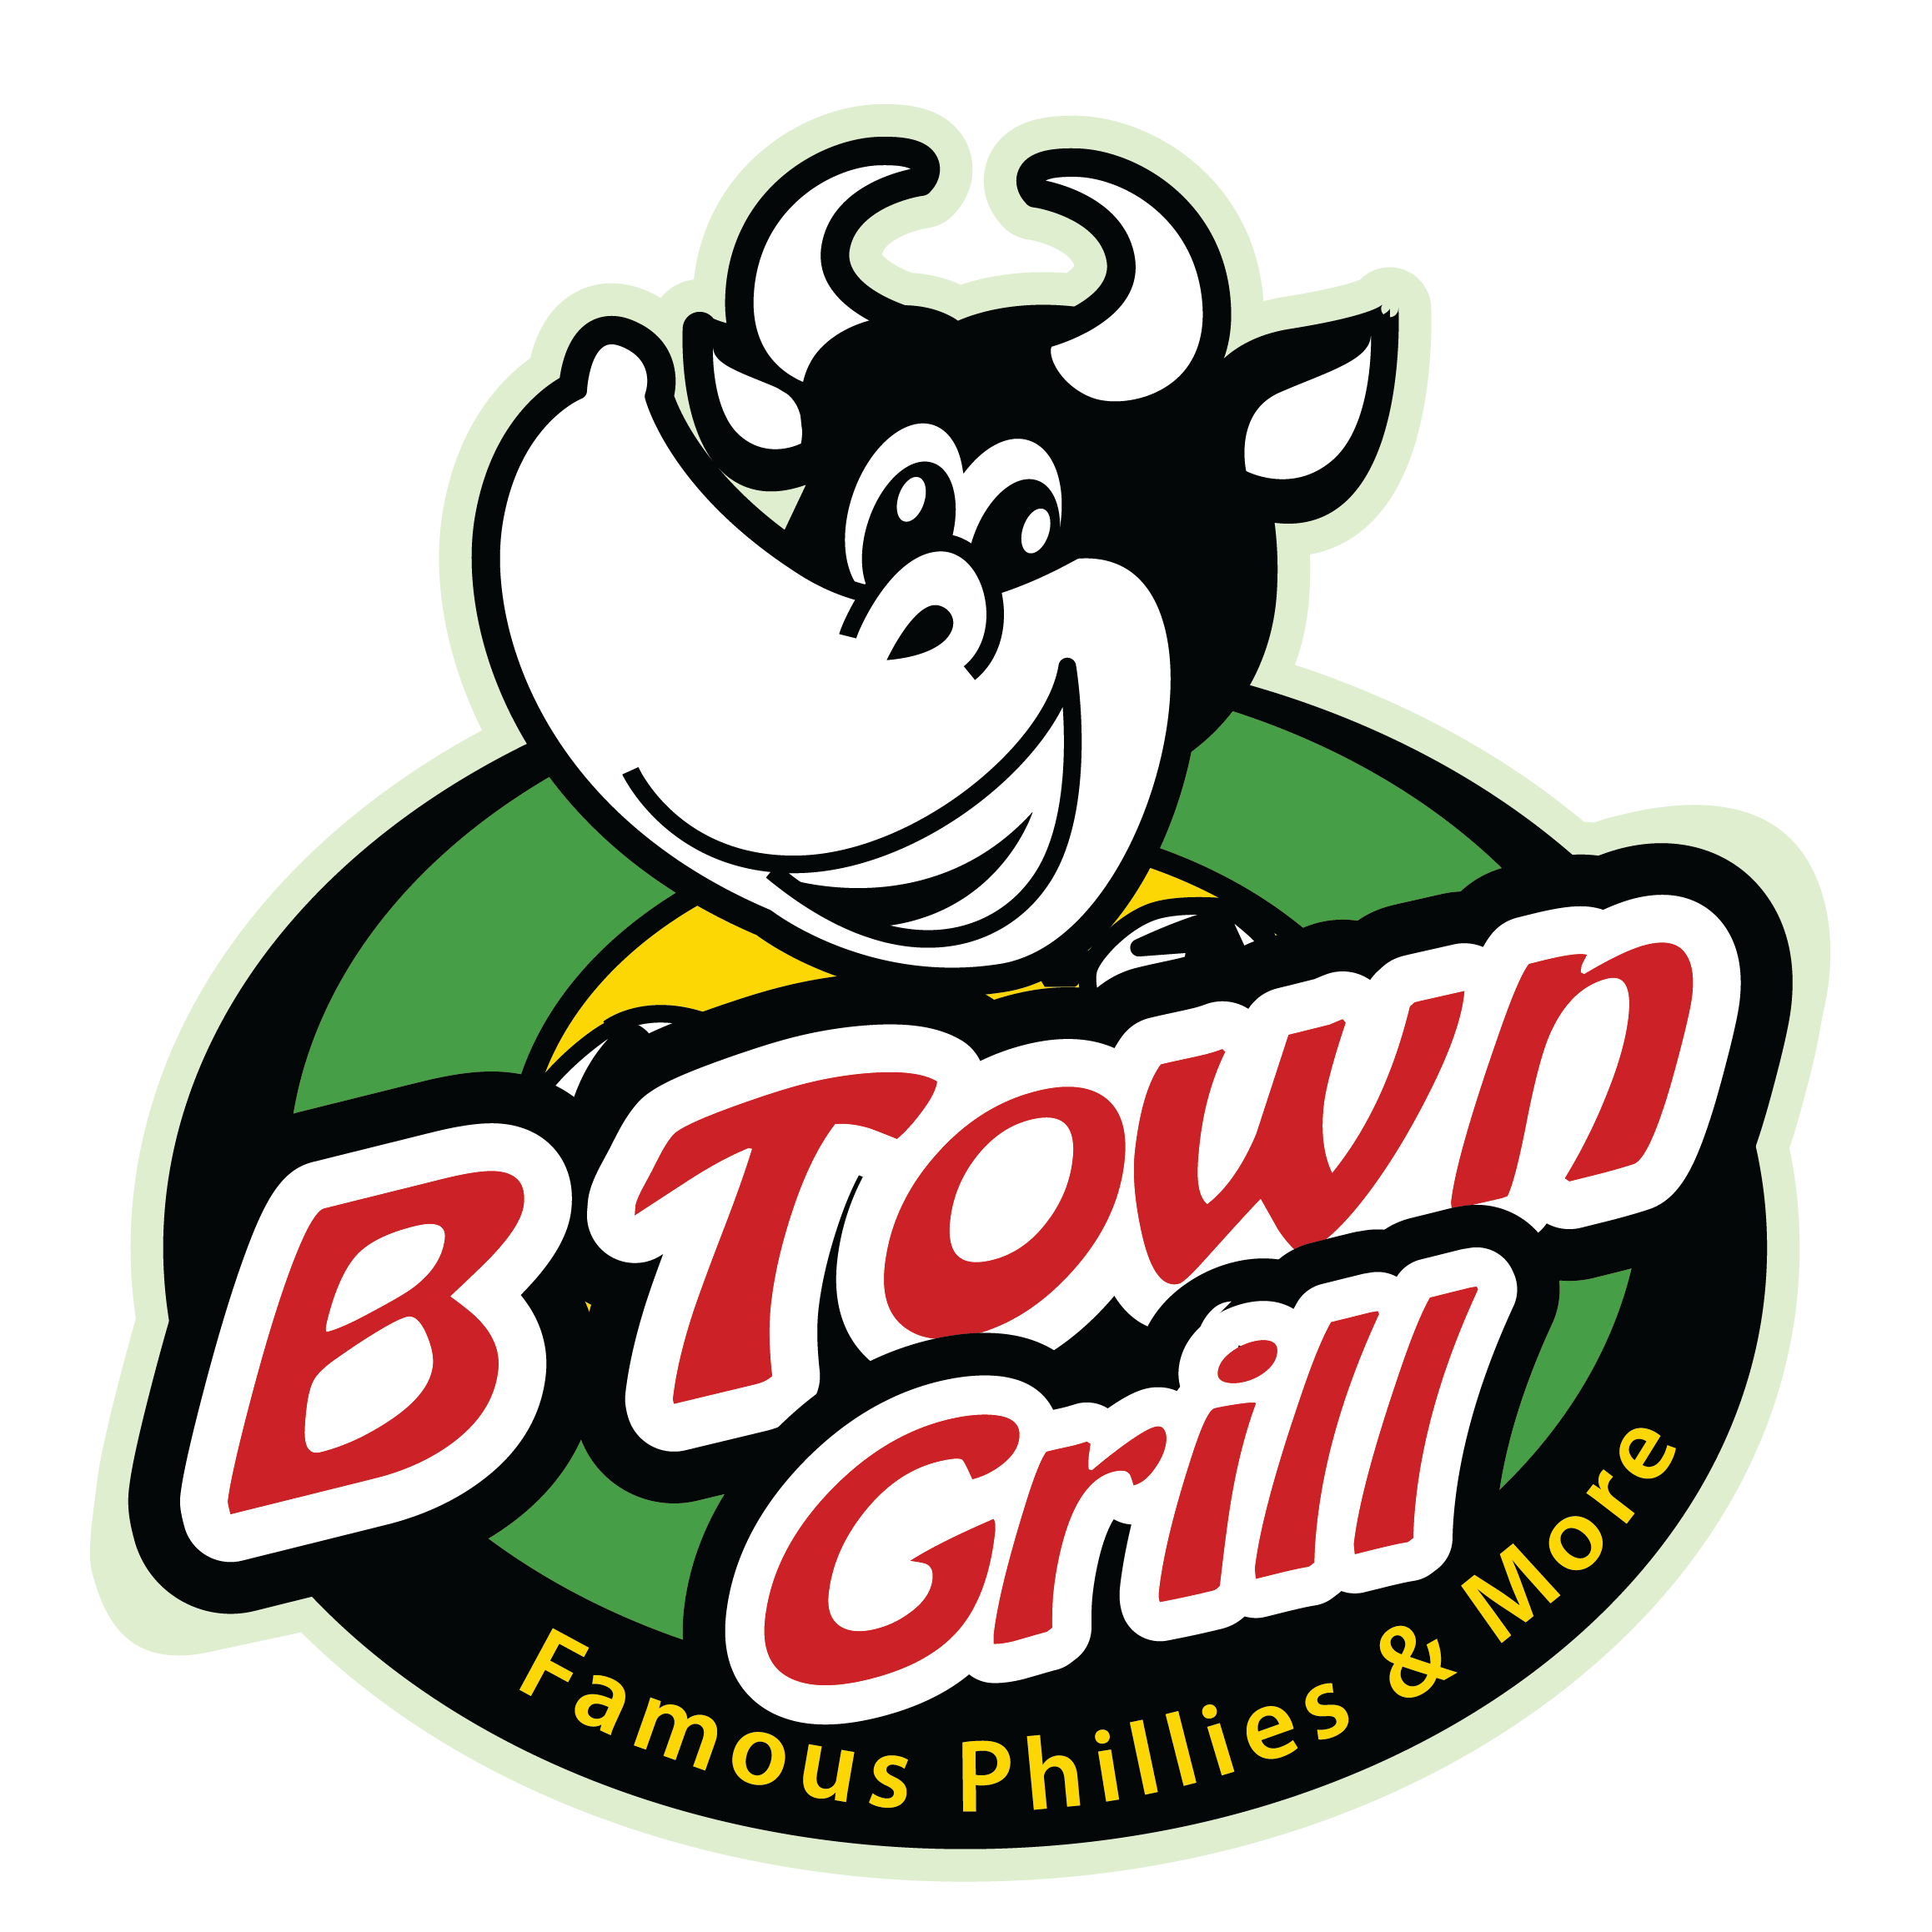 B-Town Grill Famous Phillies & More - Billings, MT 59101 - (406)969-6328 | ShowMeLocal.com